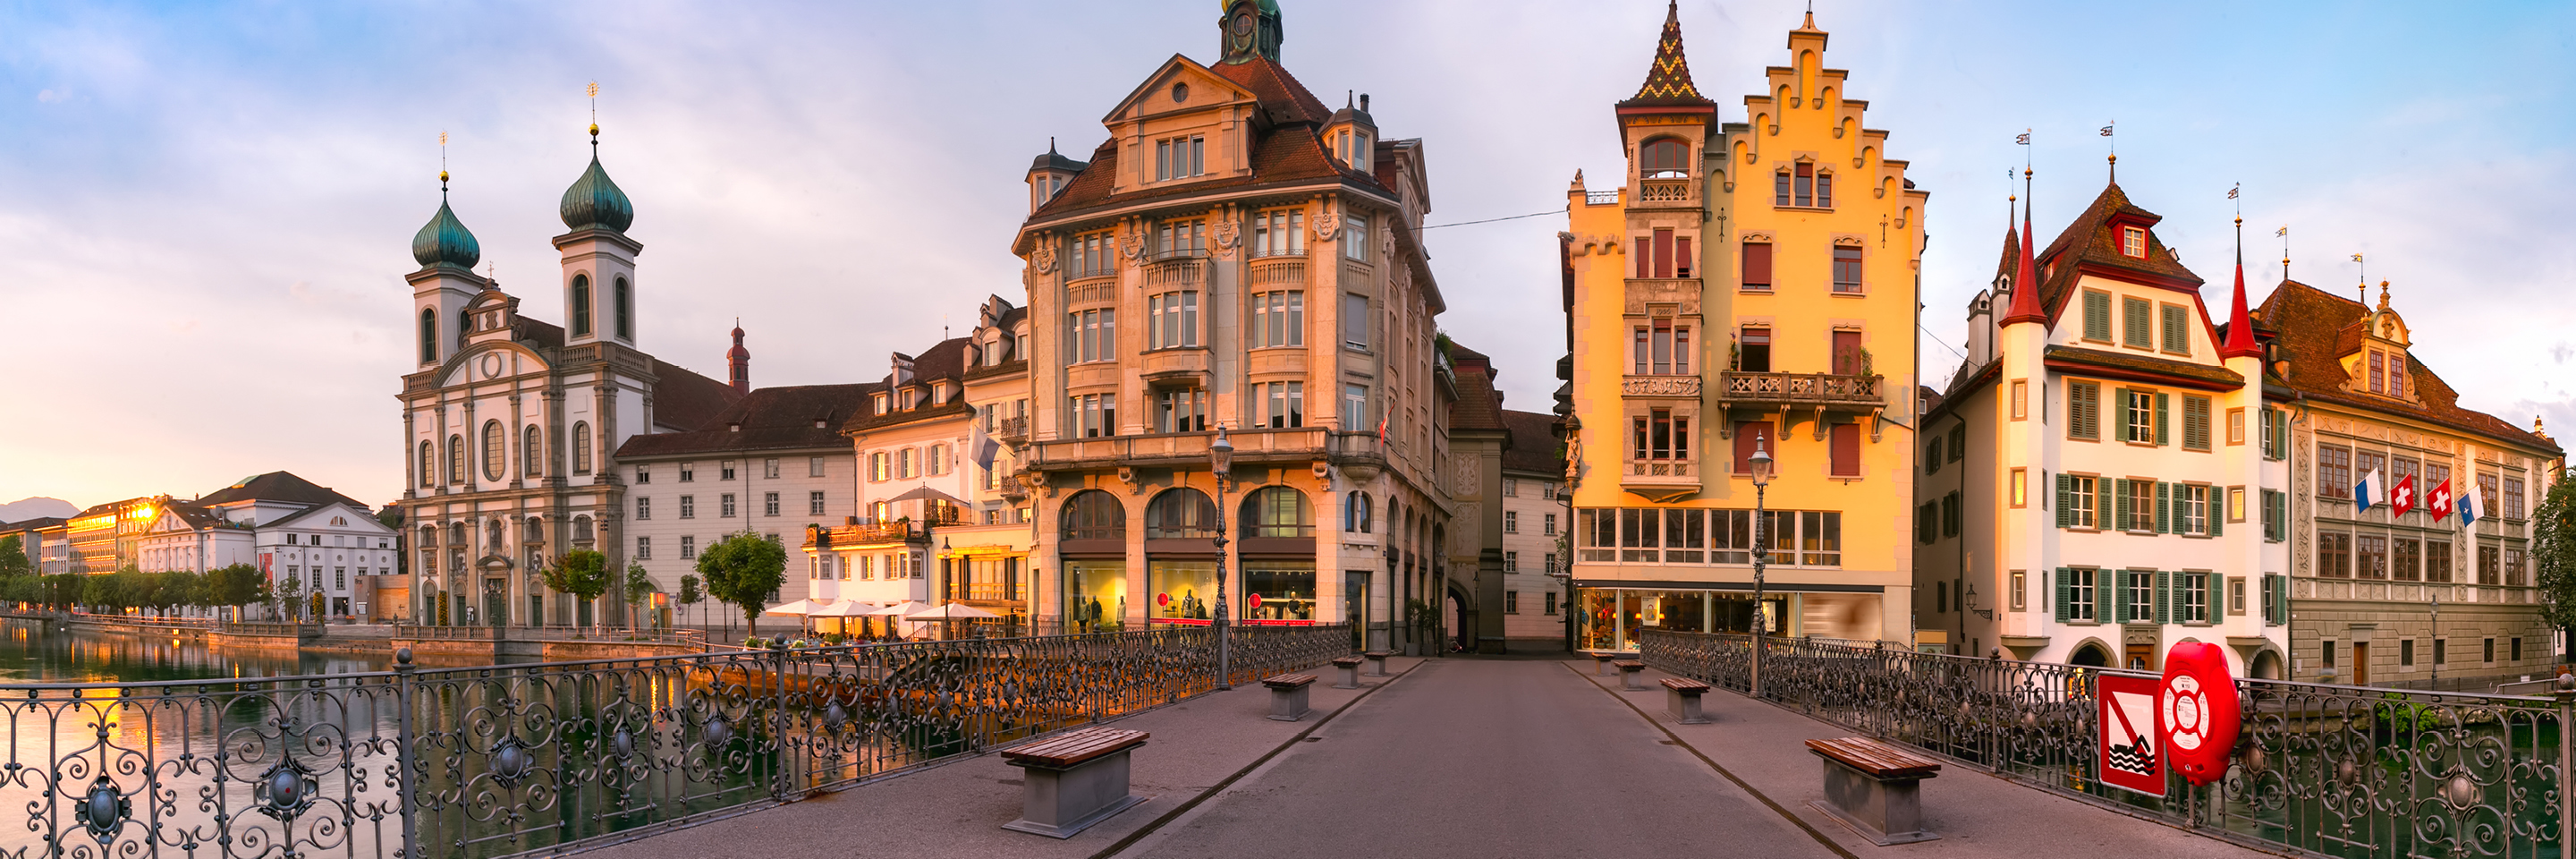 Storybook Scenery, Sarcasm & Satire   with 2 Nights in Lucerne